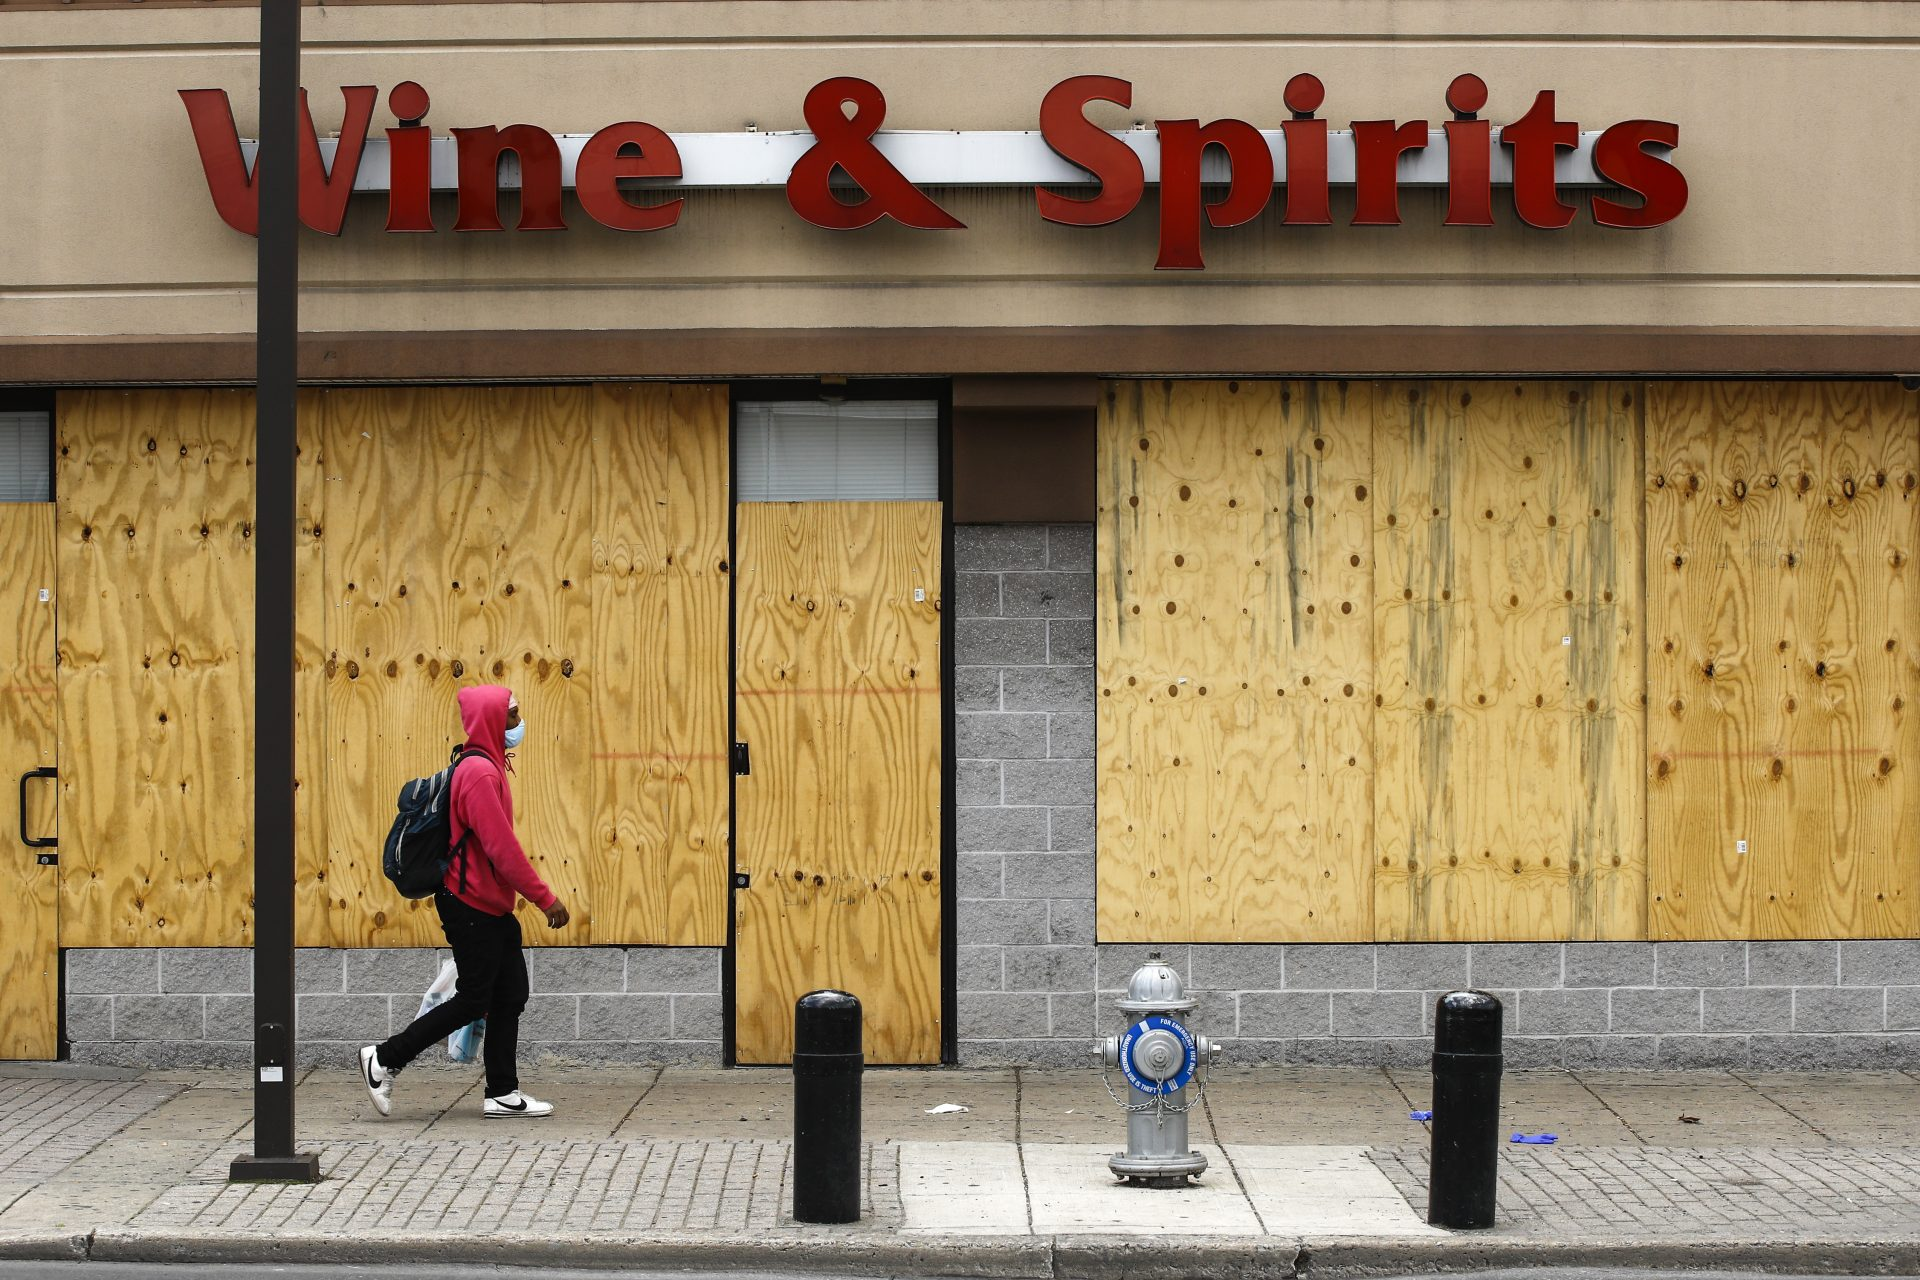 A person wearing a protective face mask as a precaution against the coronavirus walks past a boarded up Wine and Spirits store in Philadelphia, Thursday, April 16, 2020. Pennsylvania's liquor agency says workers are coming back on the job at more than 100 shuttered state-owned liquor stores to help process online orders.